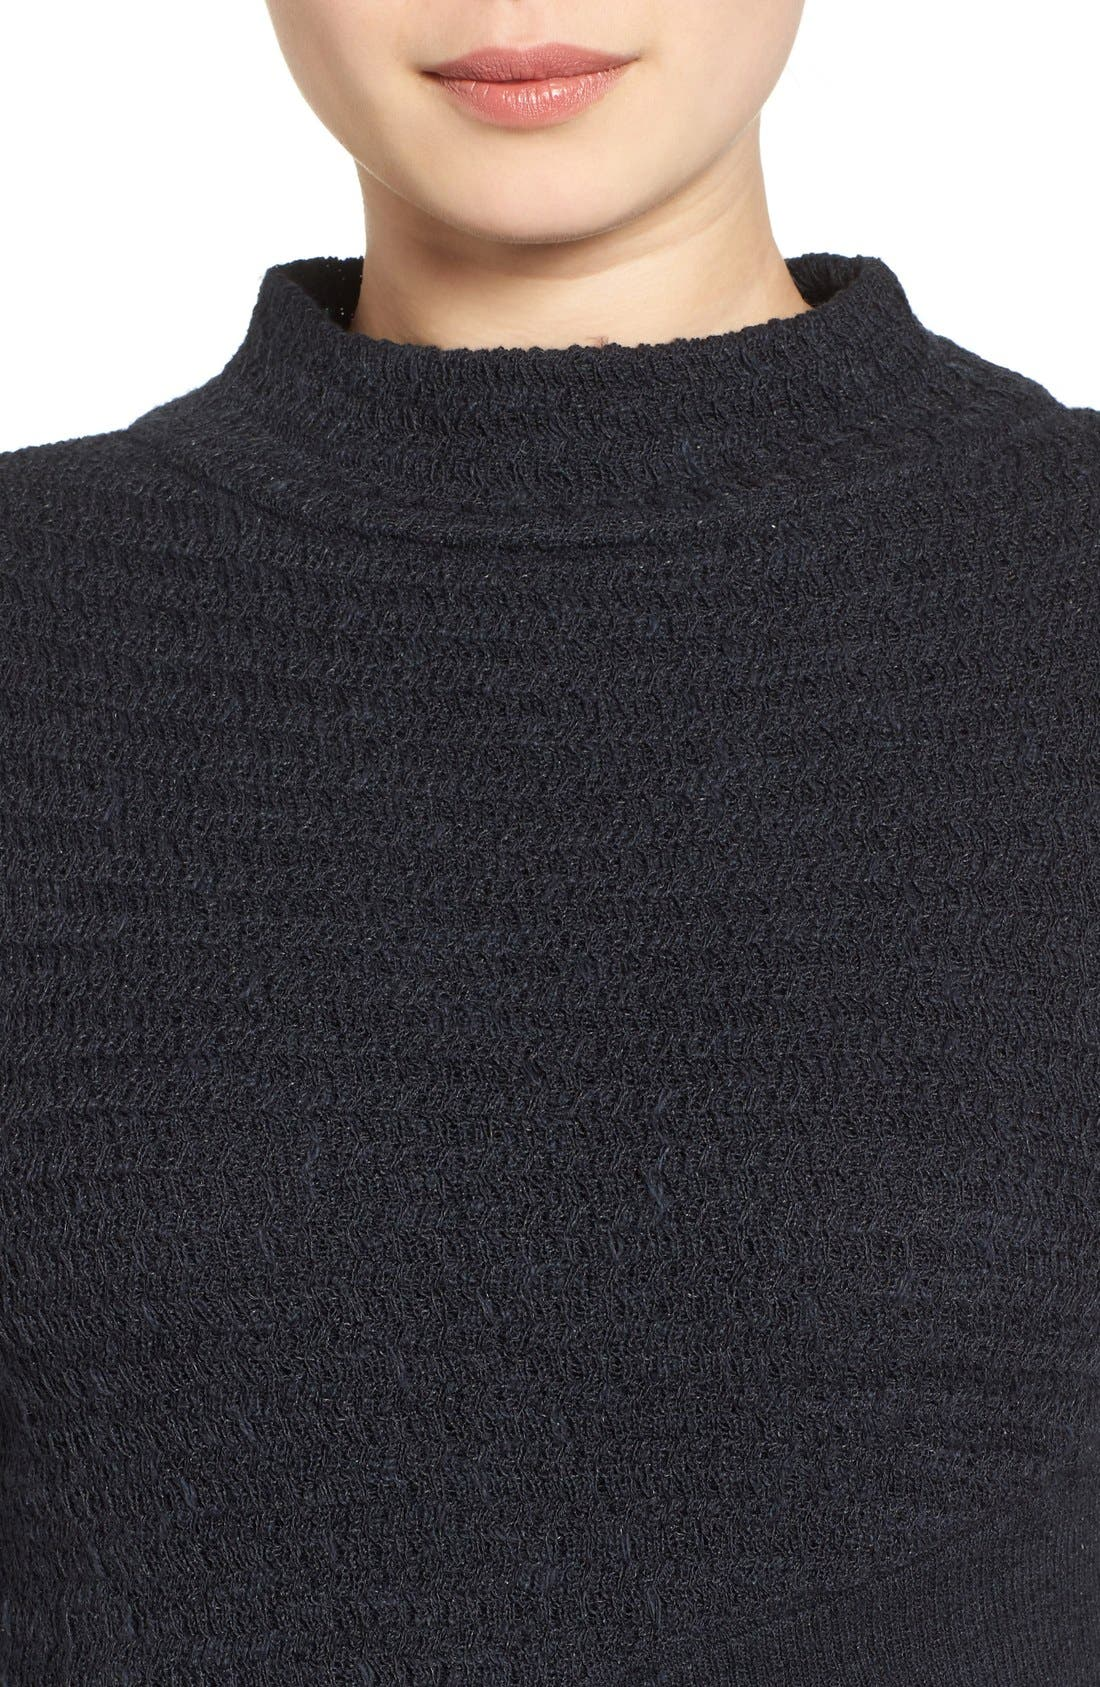 Crossover Sweater,                             Alternate thumbnail 6, color,                             001